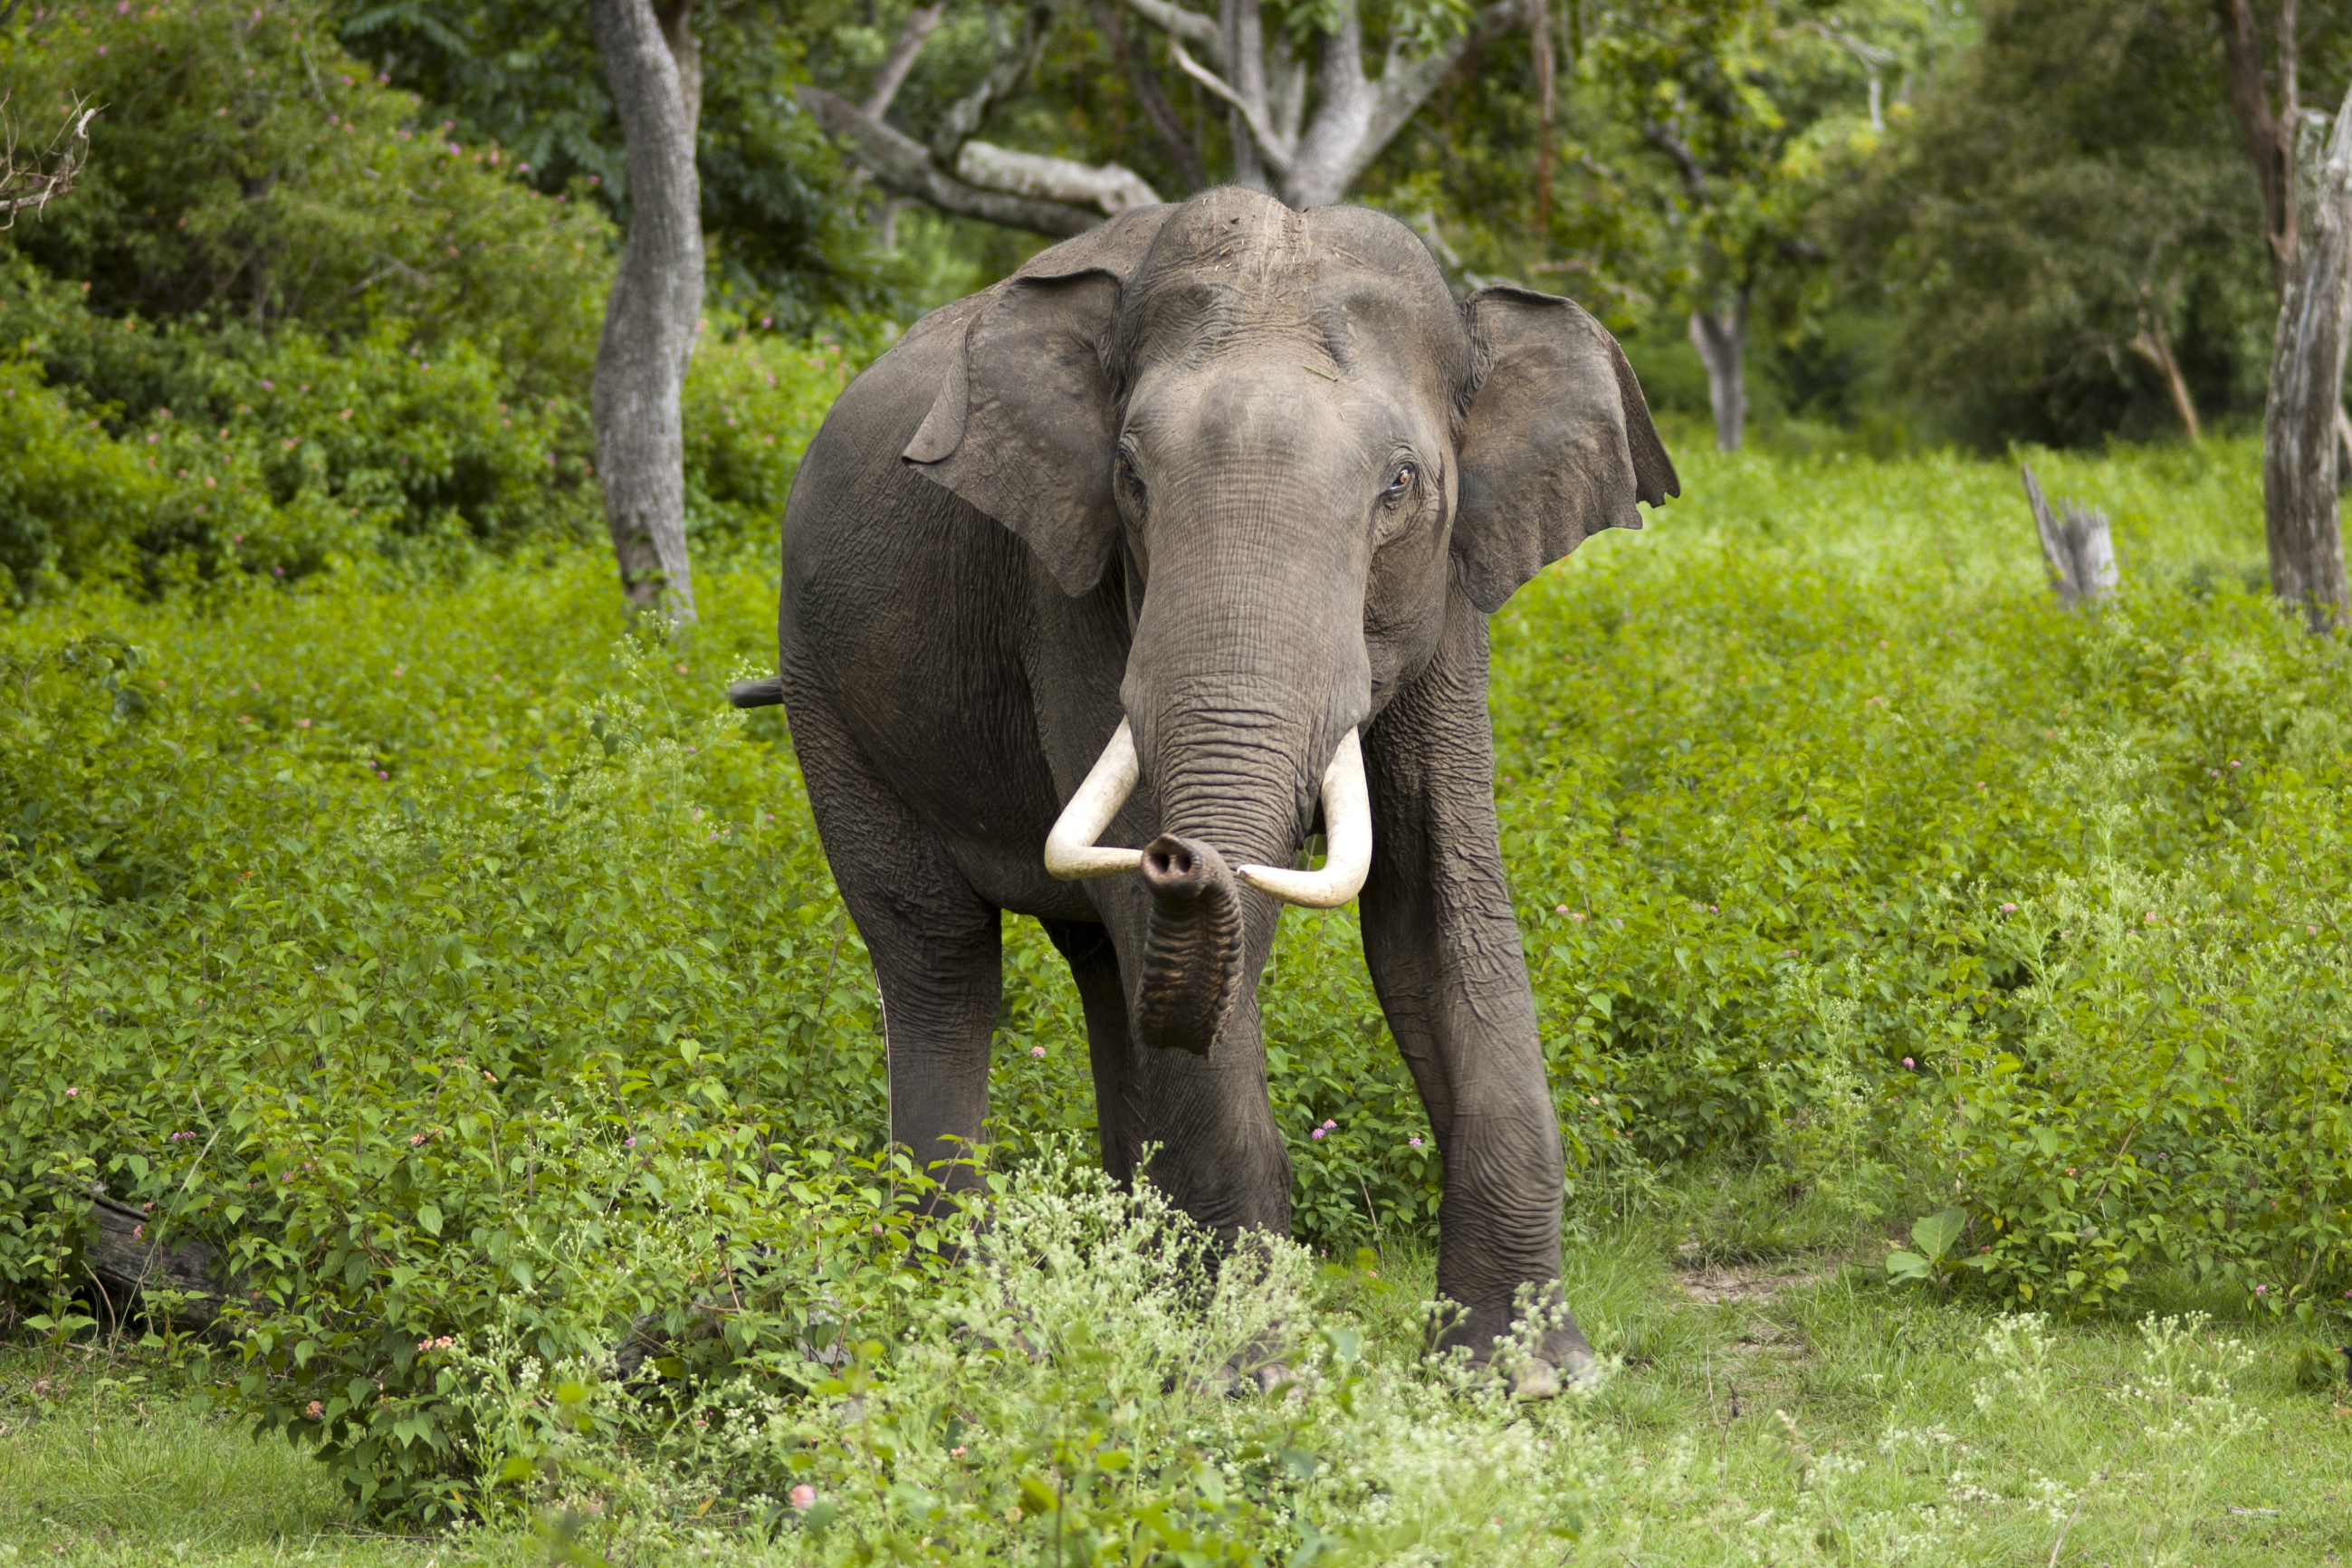 A click of an elephant inside Parambikulam Wildlife Sanctuary